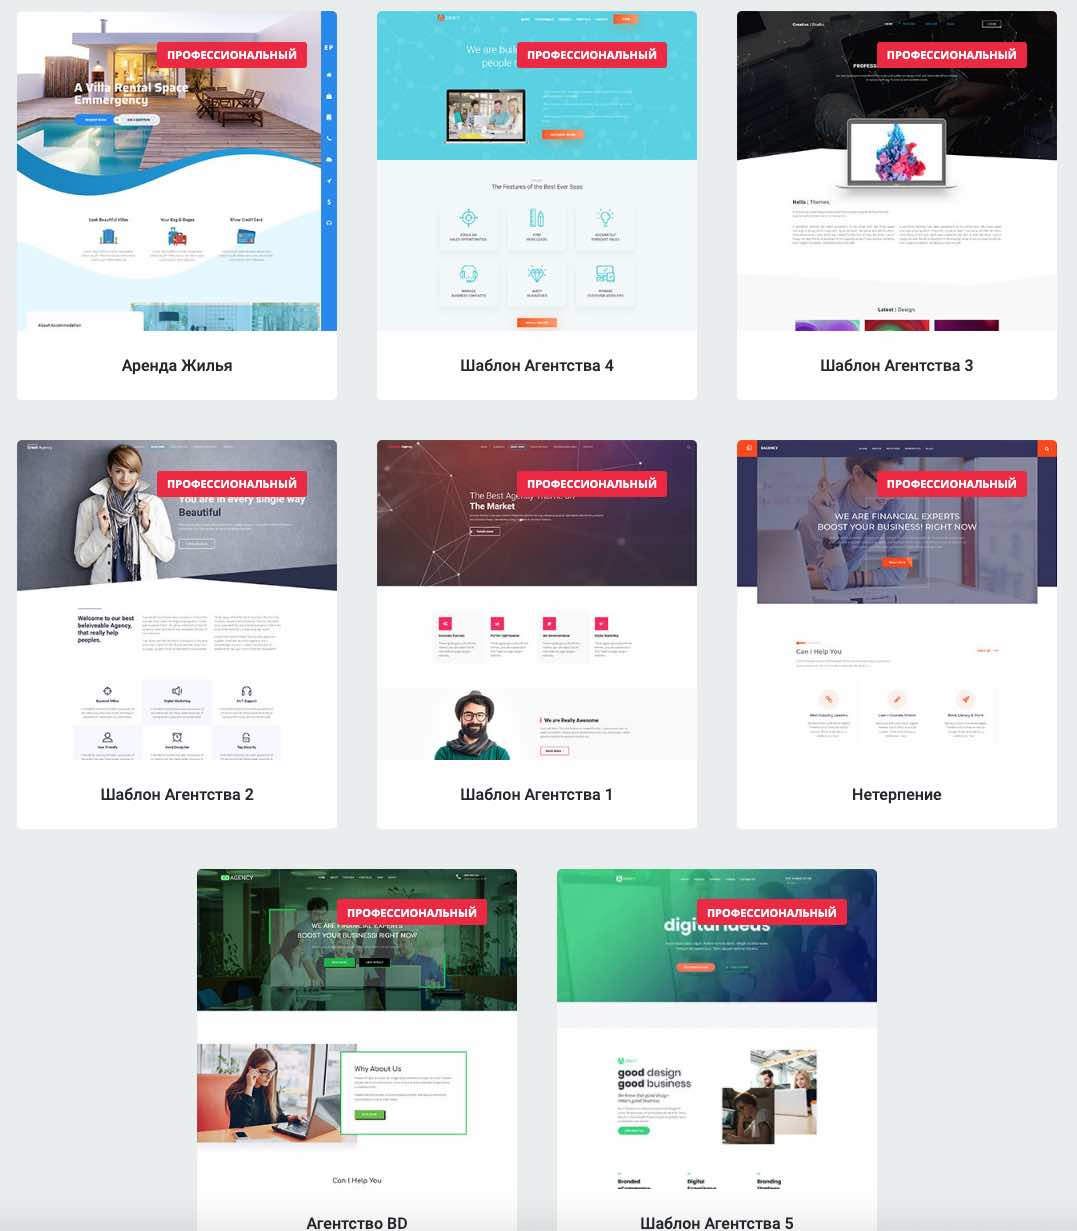 Element Pack, элемент пак, плагин wordpress Element Pack, плагин вордпресс элемент пак,